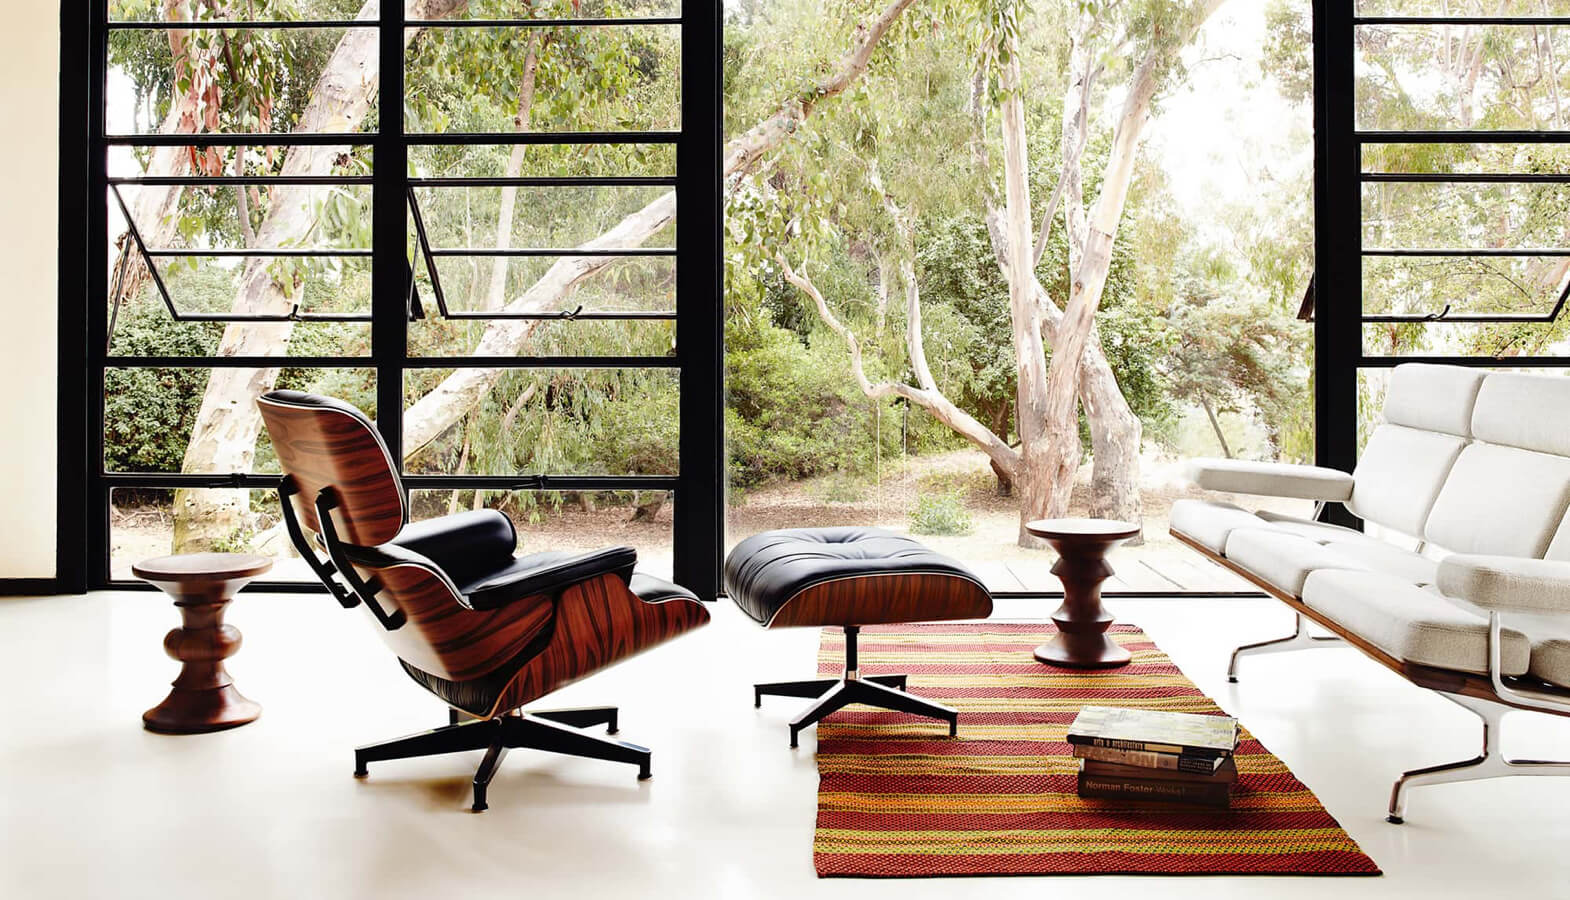 Midcentury Modern Design: Designers and Architects of the era